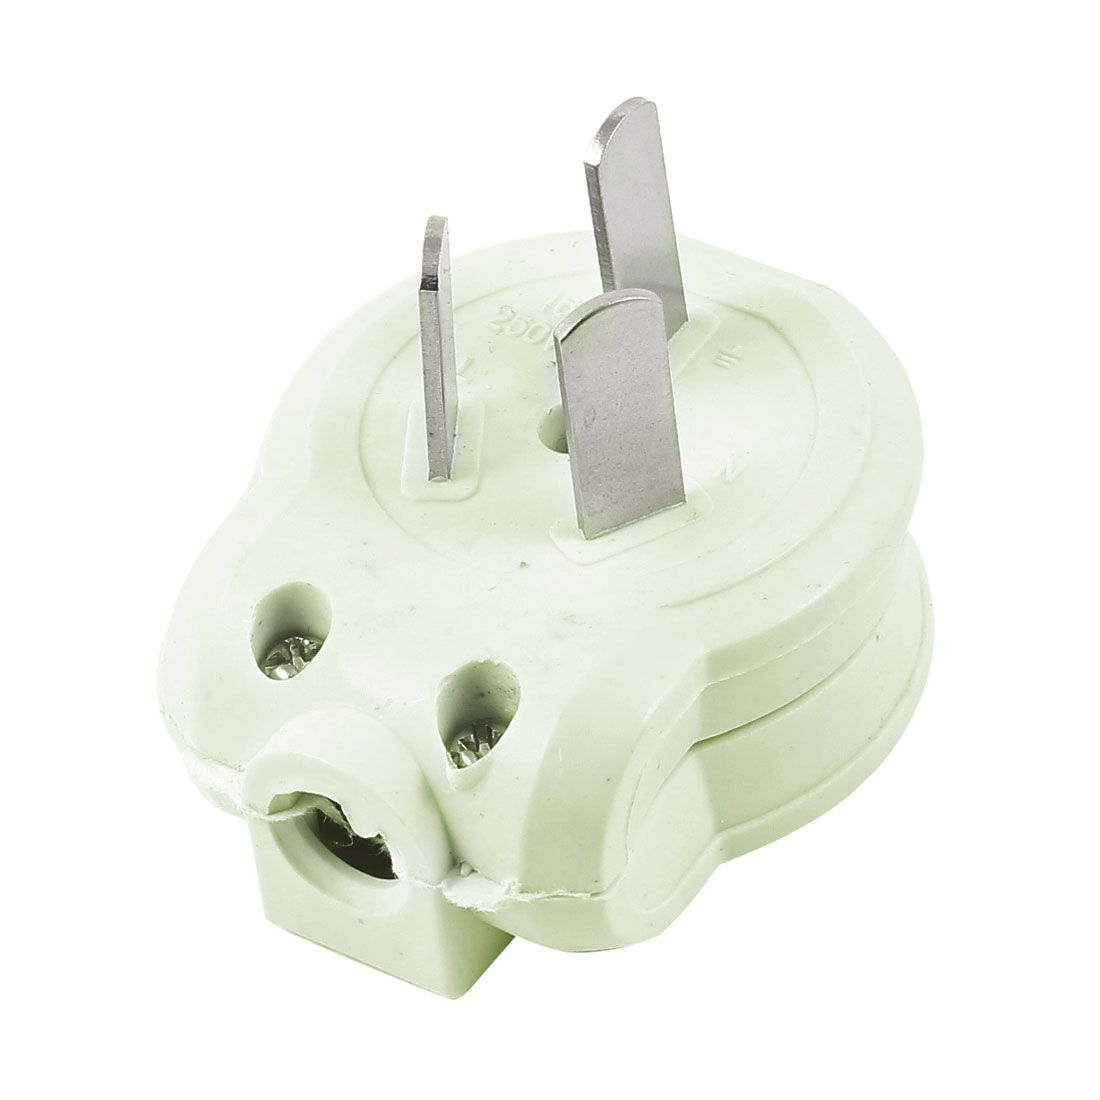 2 PCS Pale Green Plastic Adapter Connector AC 250V 10A AU Plug